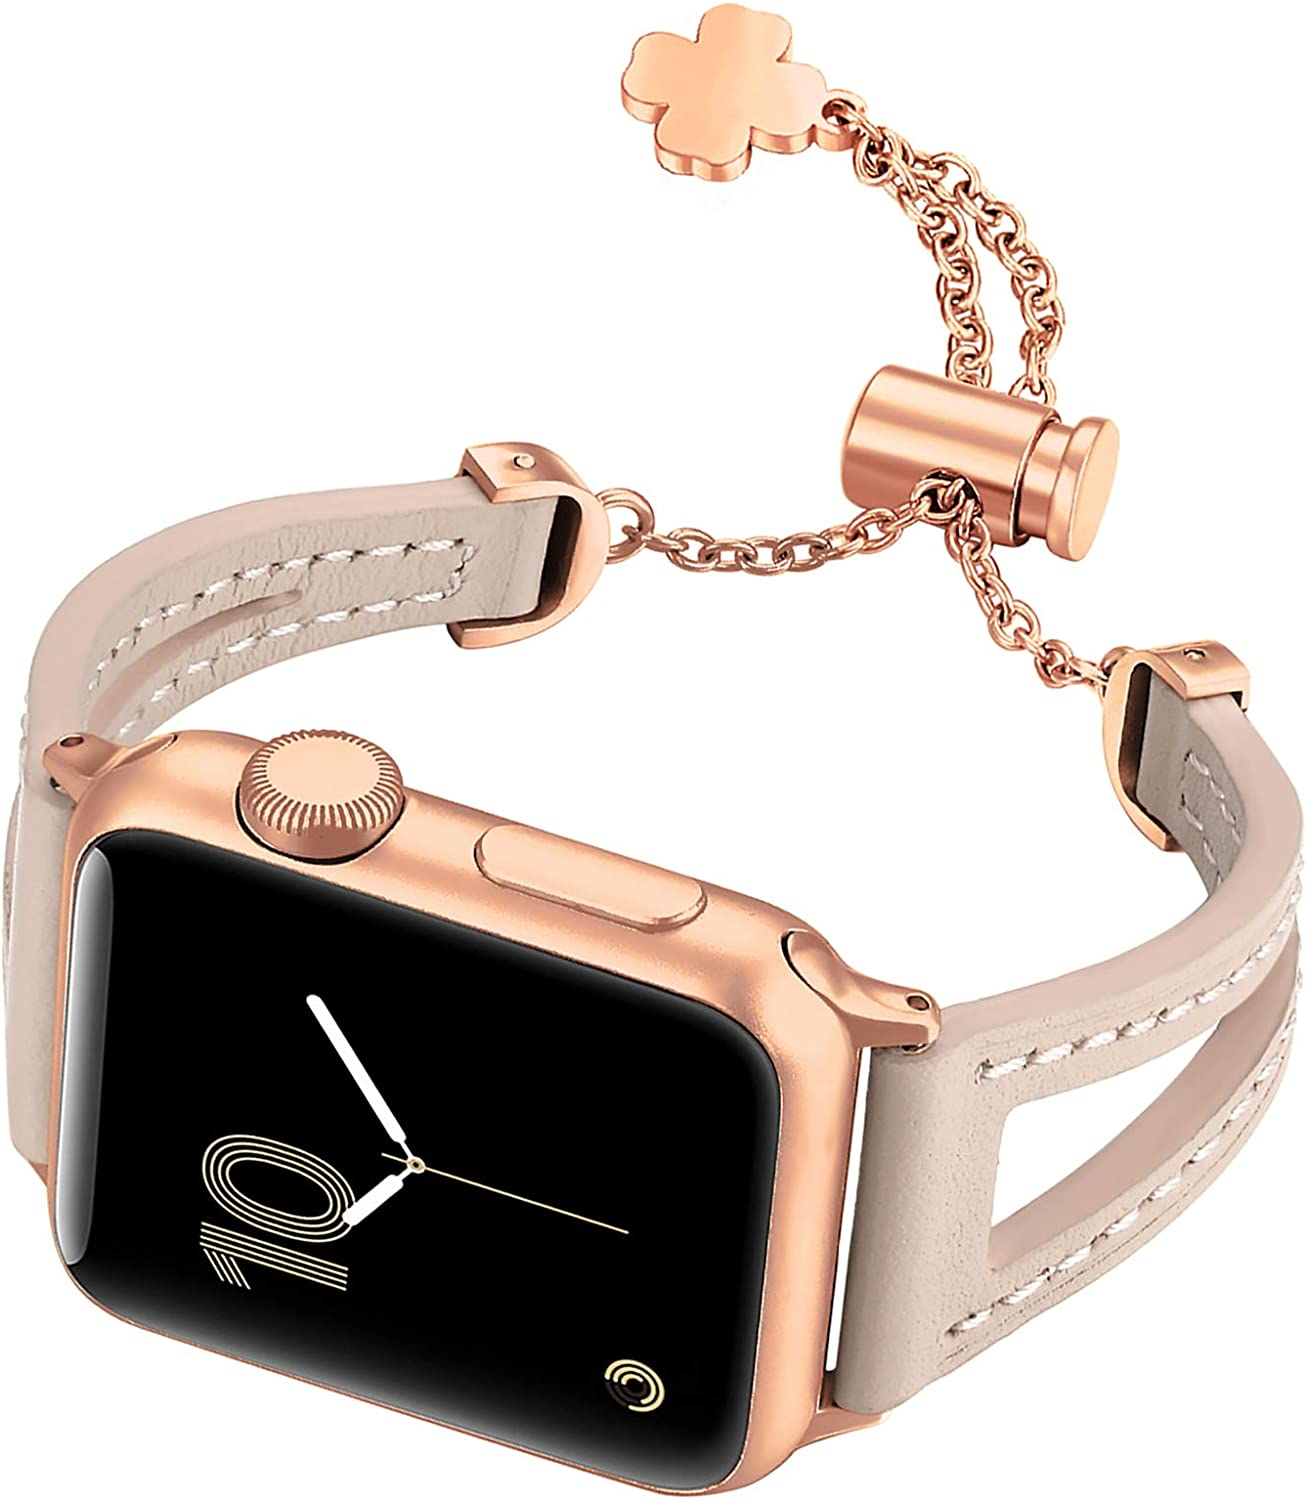 Fastgo Bracelet Compatible with Apple Watch Bands 38mm 40mm 42mm 44mm, Slim Thin Leather Breathable Replacement Strap Bands Women Girls for Iwatch Series SE & 6/5/4/3/2/1